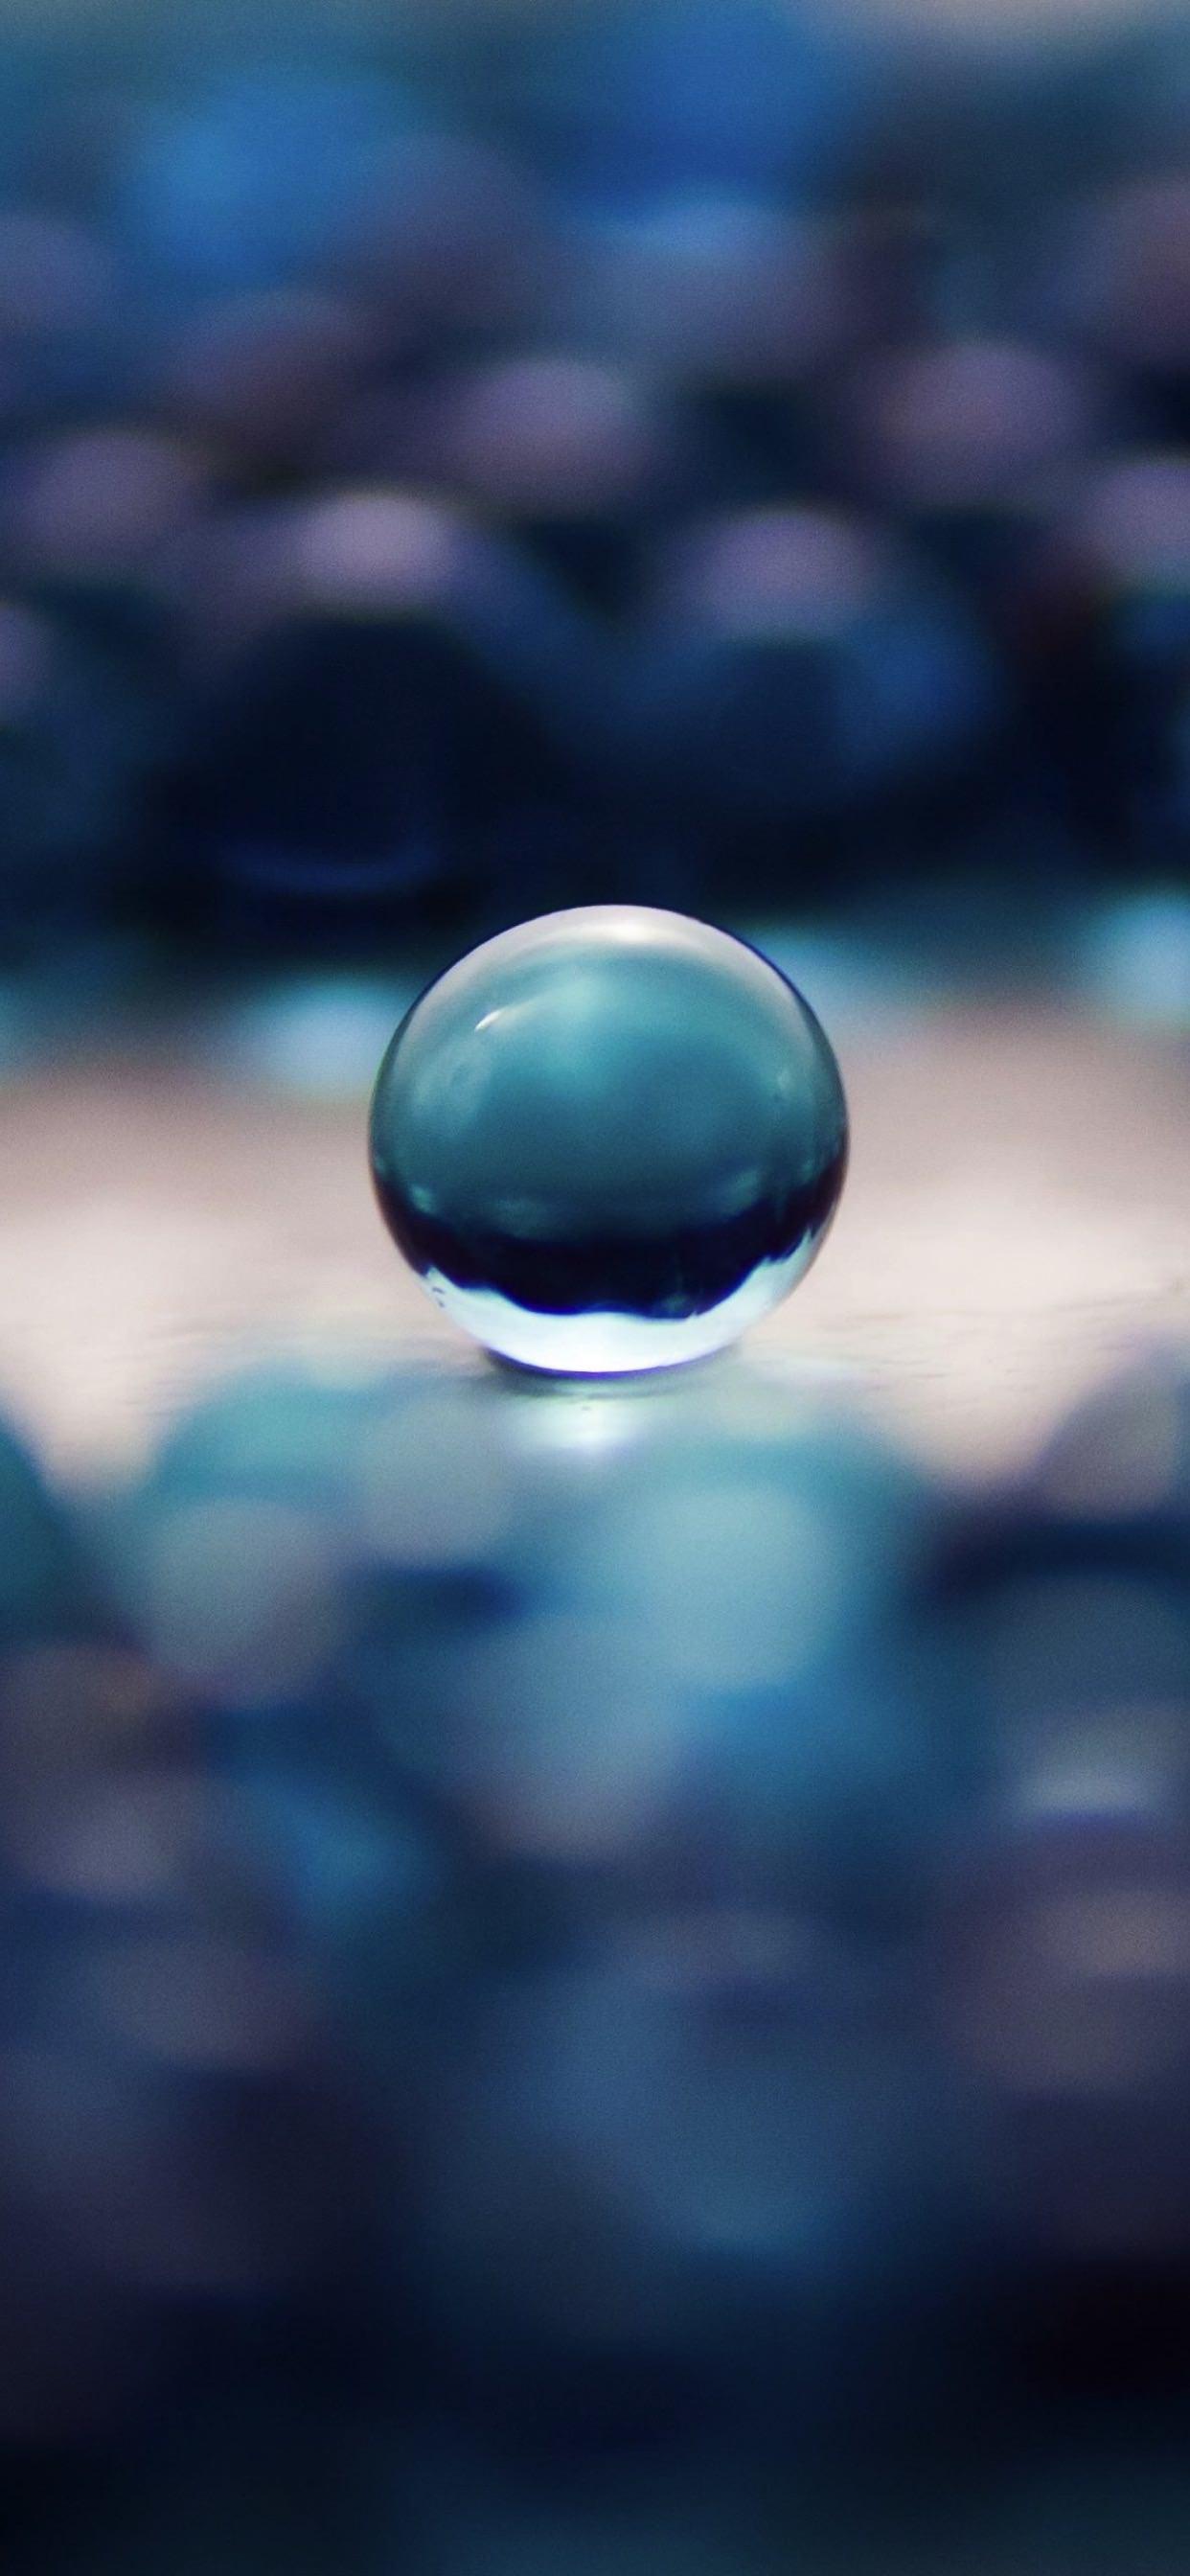 Cool Marbles Blue Wallpaper Sc Iphone Xs Max